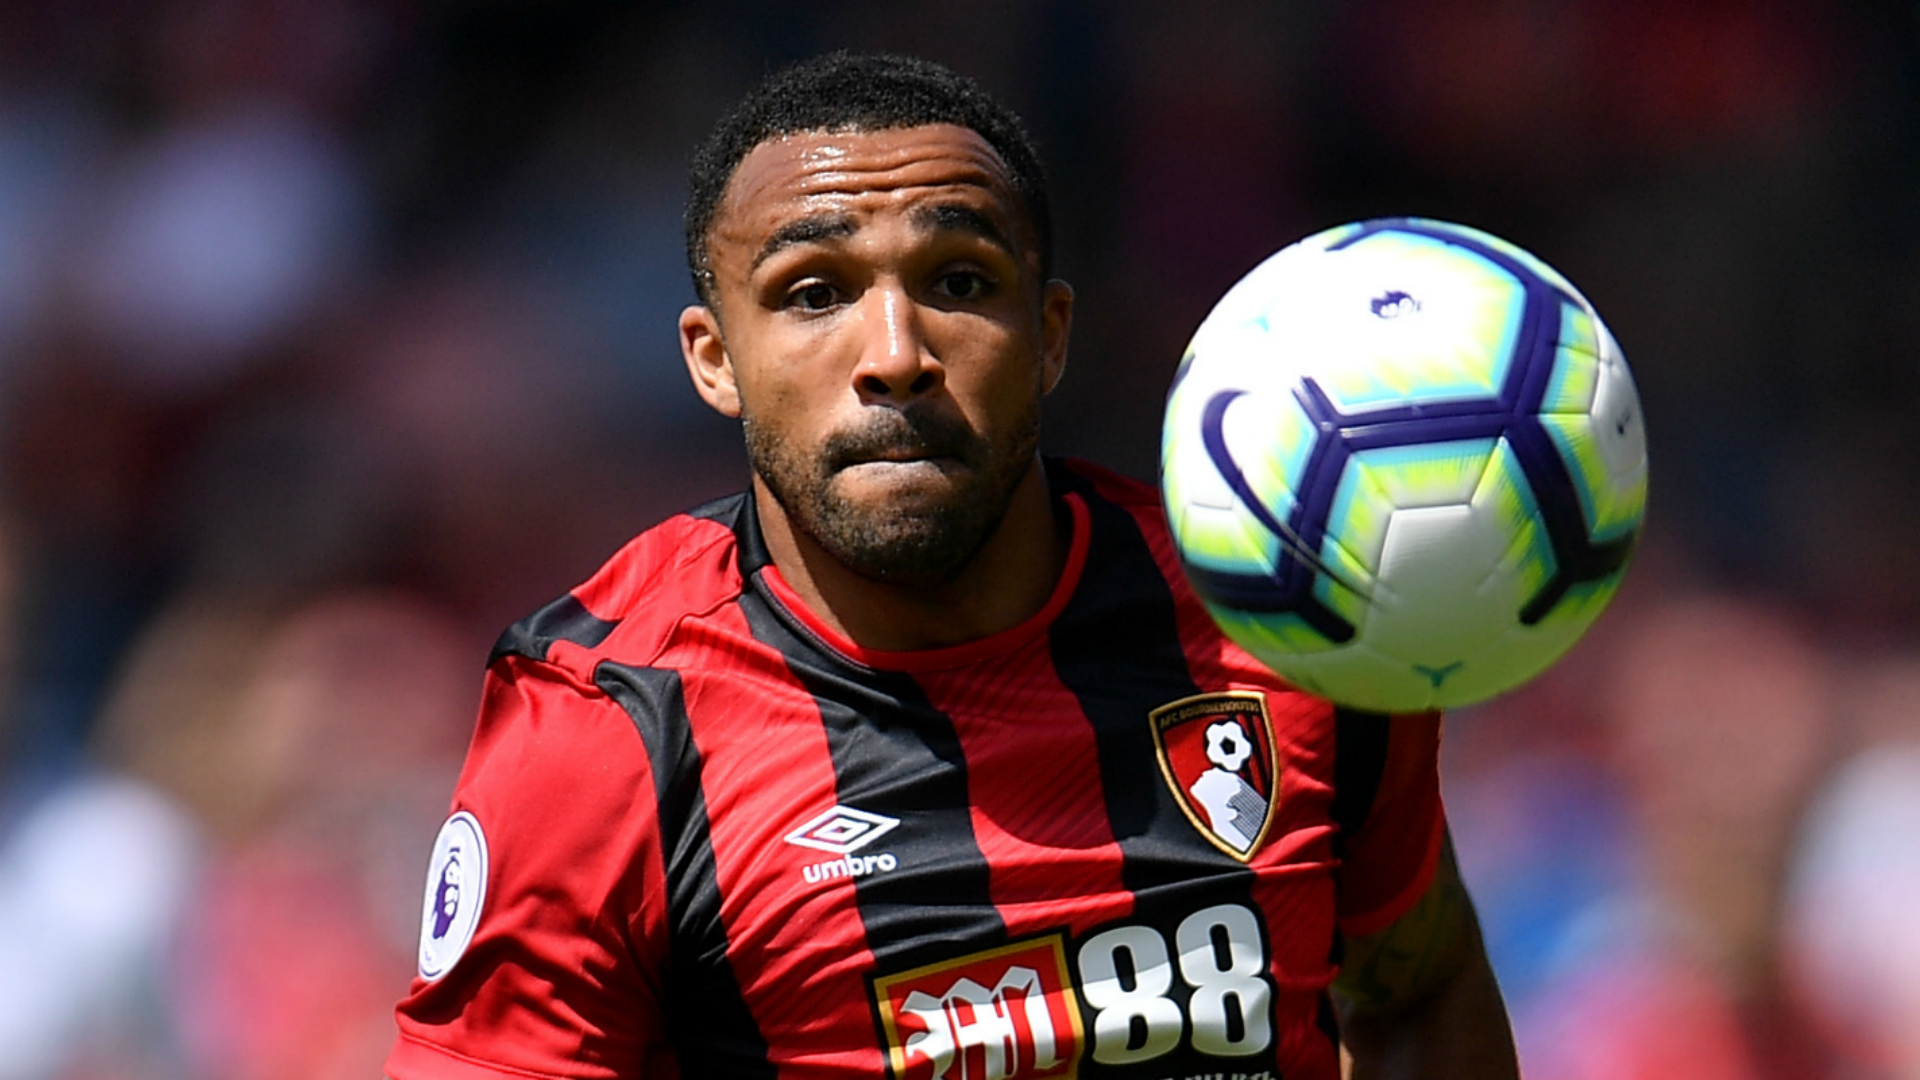 Chelsea target Wilson commits to Bournemouth with new deal to 2023